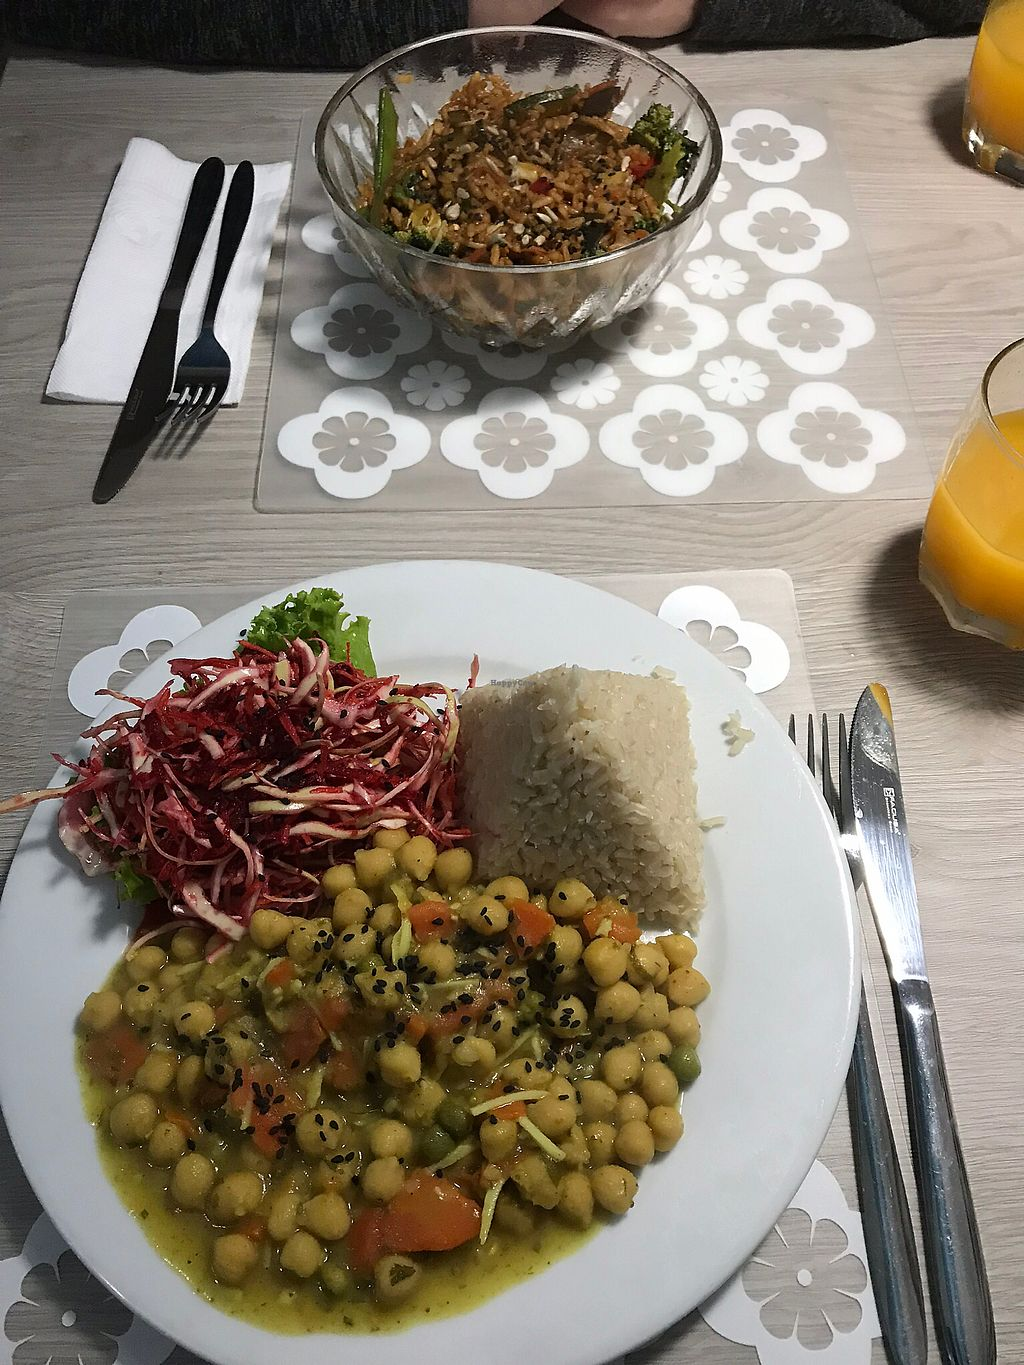 "Photo of Alma Amor  by <a href=""/members/profile/imogenmichel"">imogenmichel</a> <br/>Chickpea curry and stir fried veggie bowl  <br/> January 14, 2018  - <a href='/contact/abuse/image/92148/346326'>Report</a>"